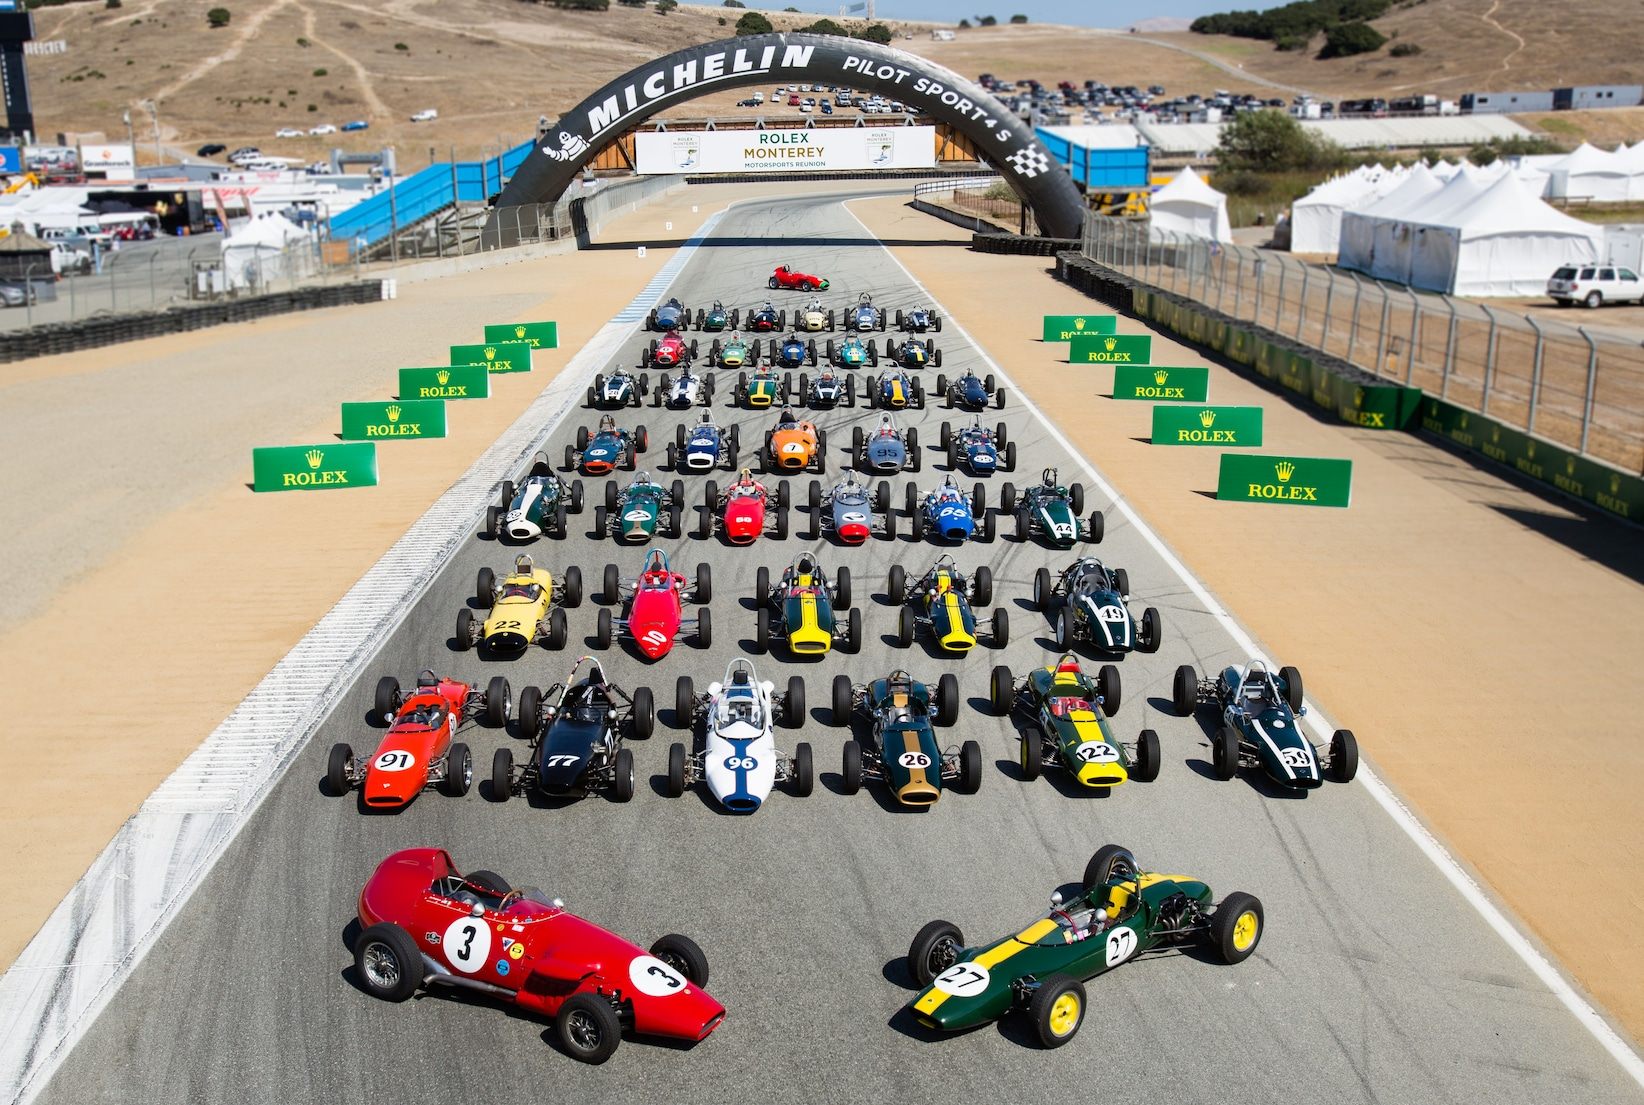 Cars line up at the Rolex Monterey Motorsports Reunion